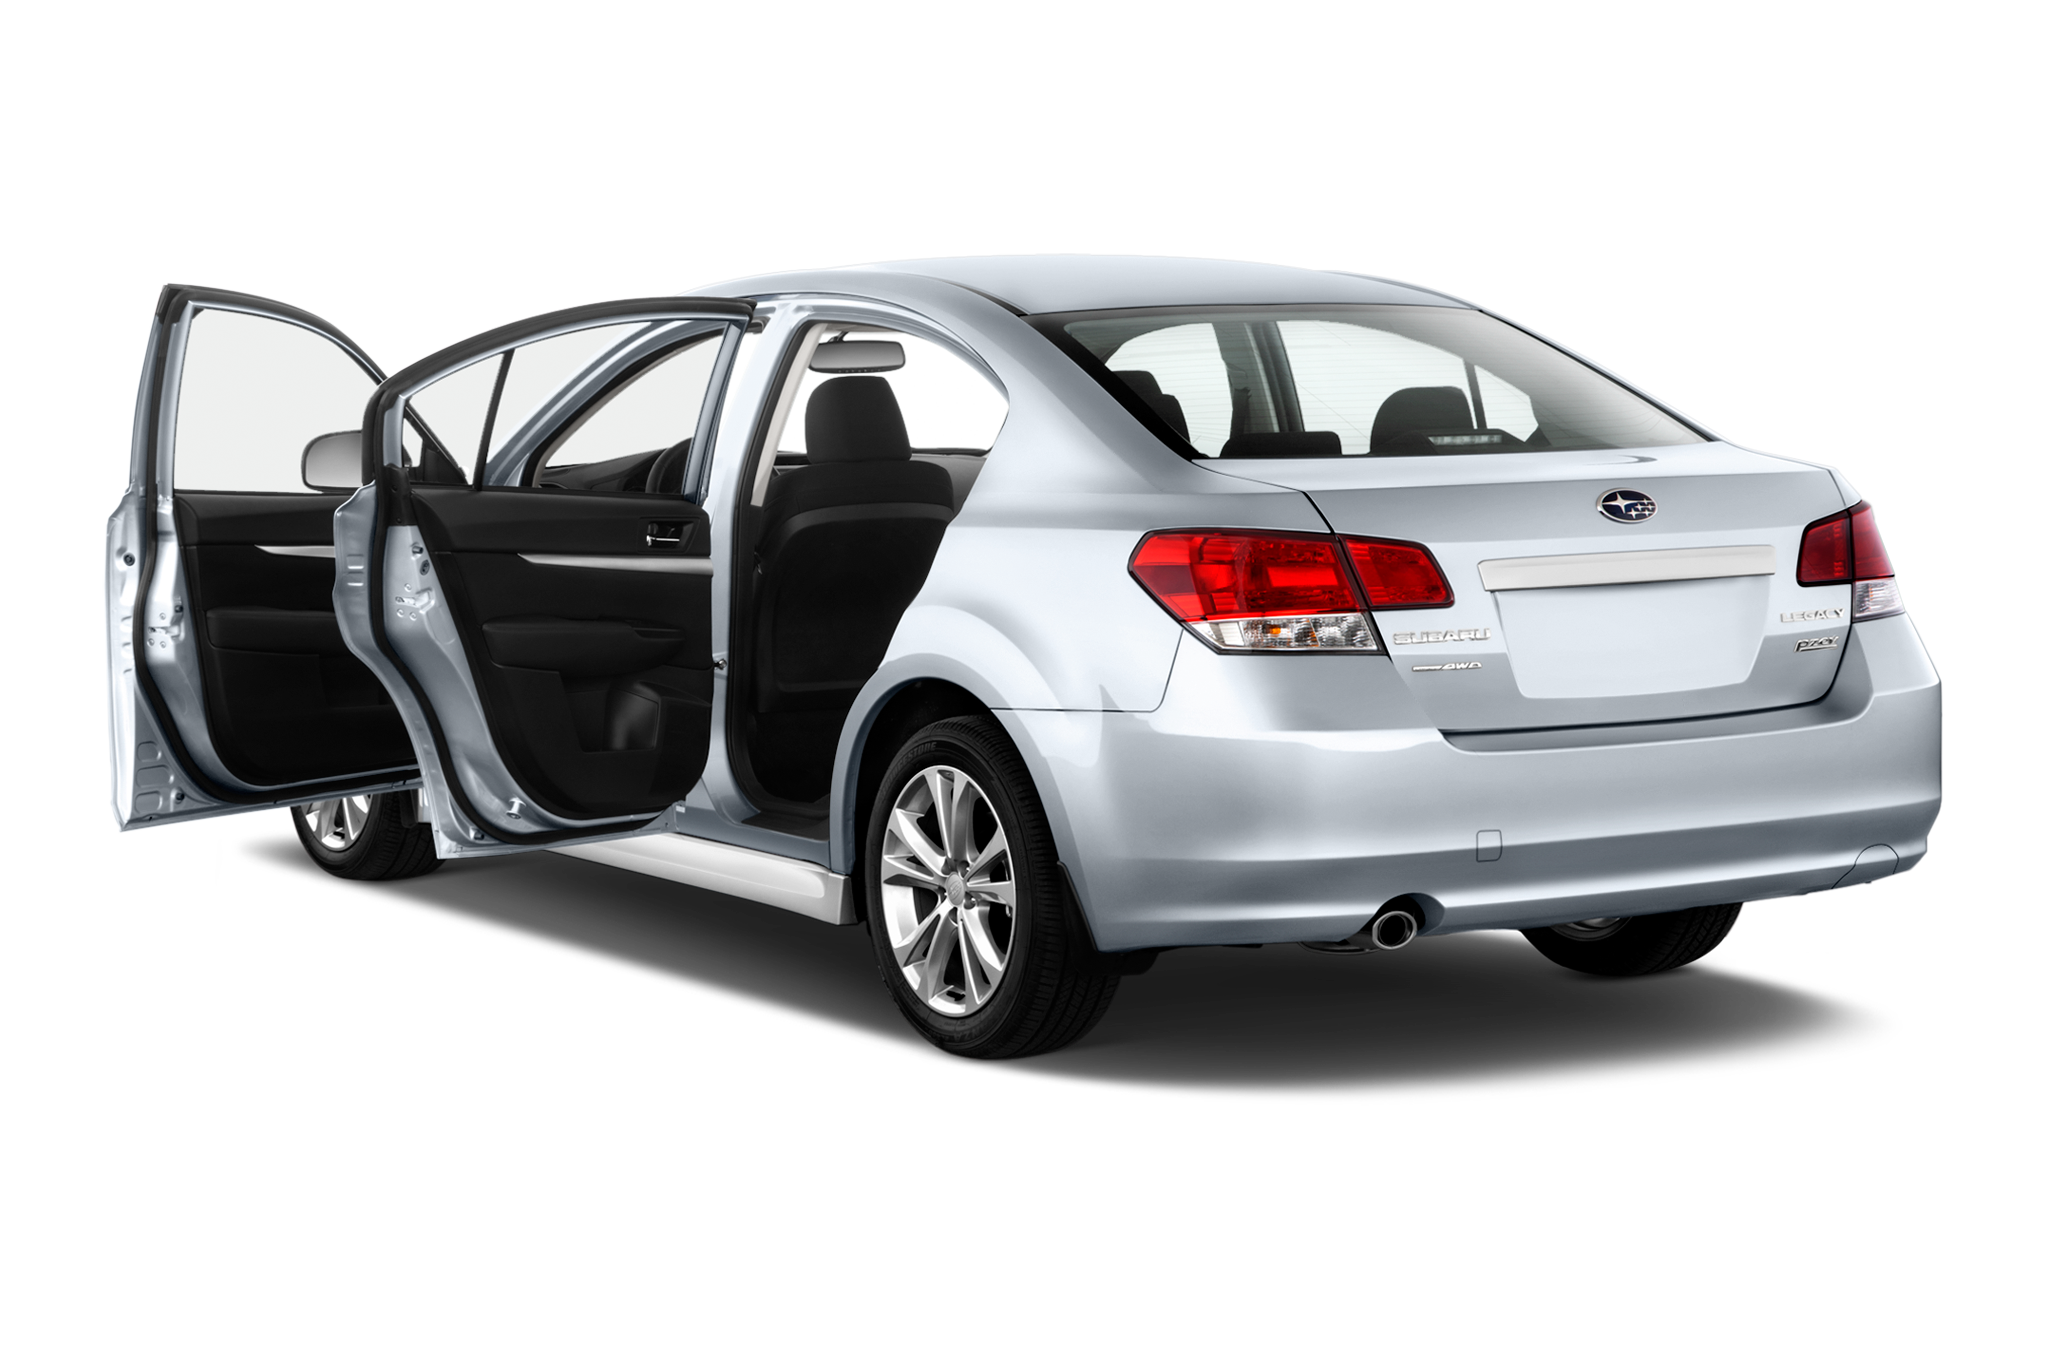 2013 subaru legacy limited editors 39 notebook. Black Bedroom Furniture Sets. Home Design Ideas